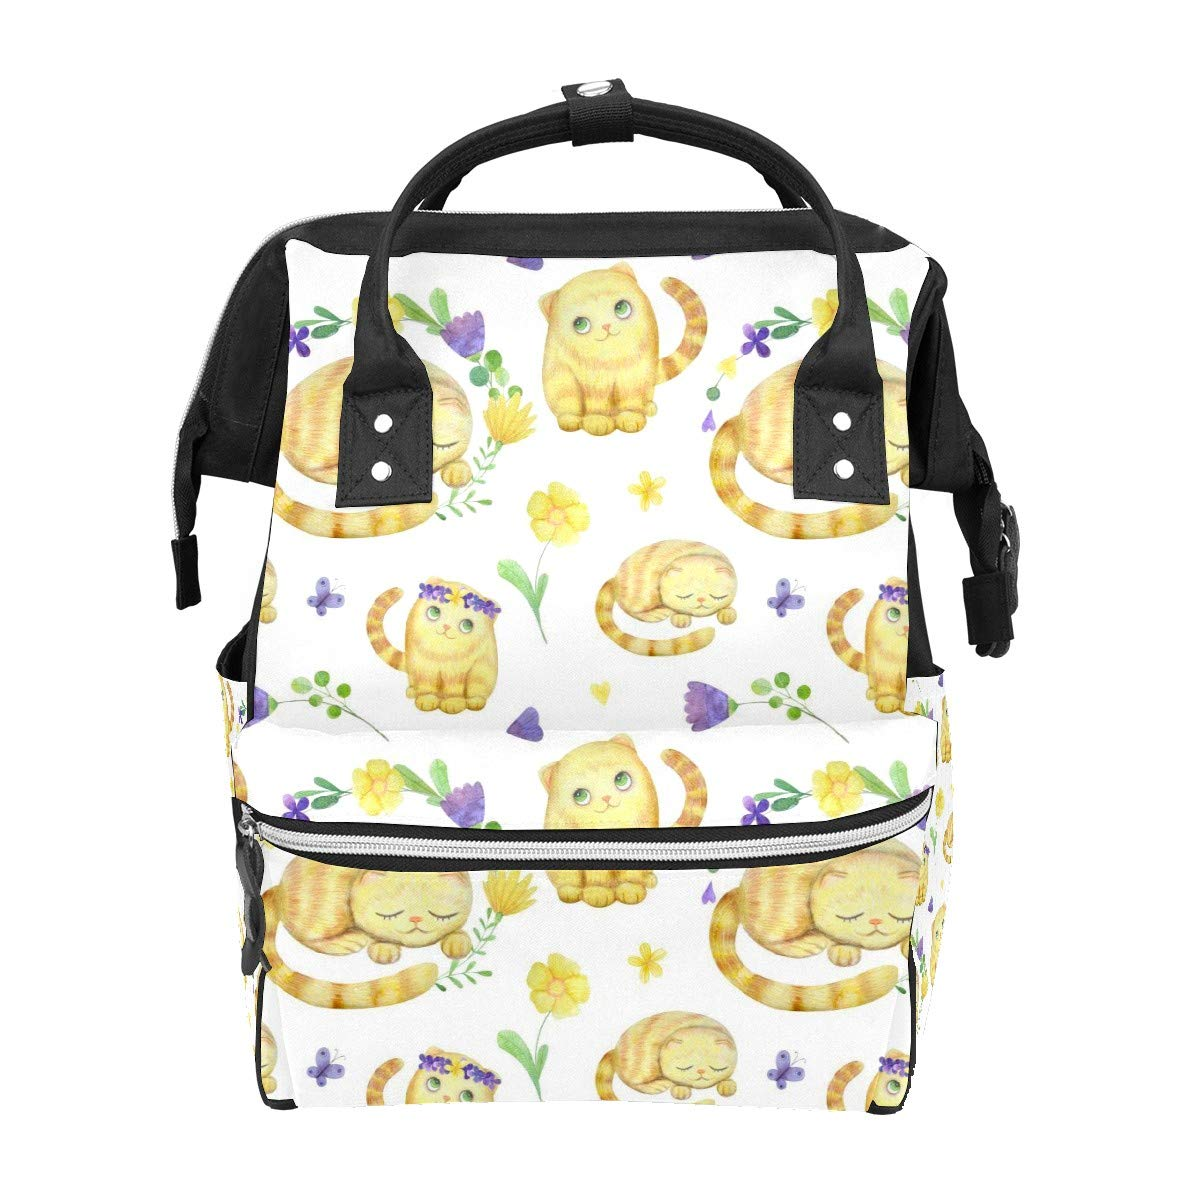 Diaper Bag Backpack Watercolor Flowers Cute Cat Multifunction Travel Back Pack Baby Changing Bags Large Capacity Waterproof Stylish